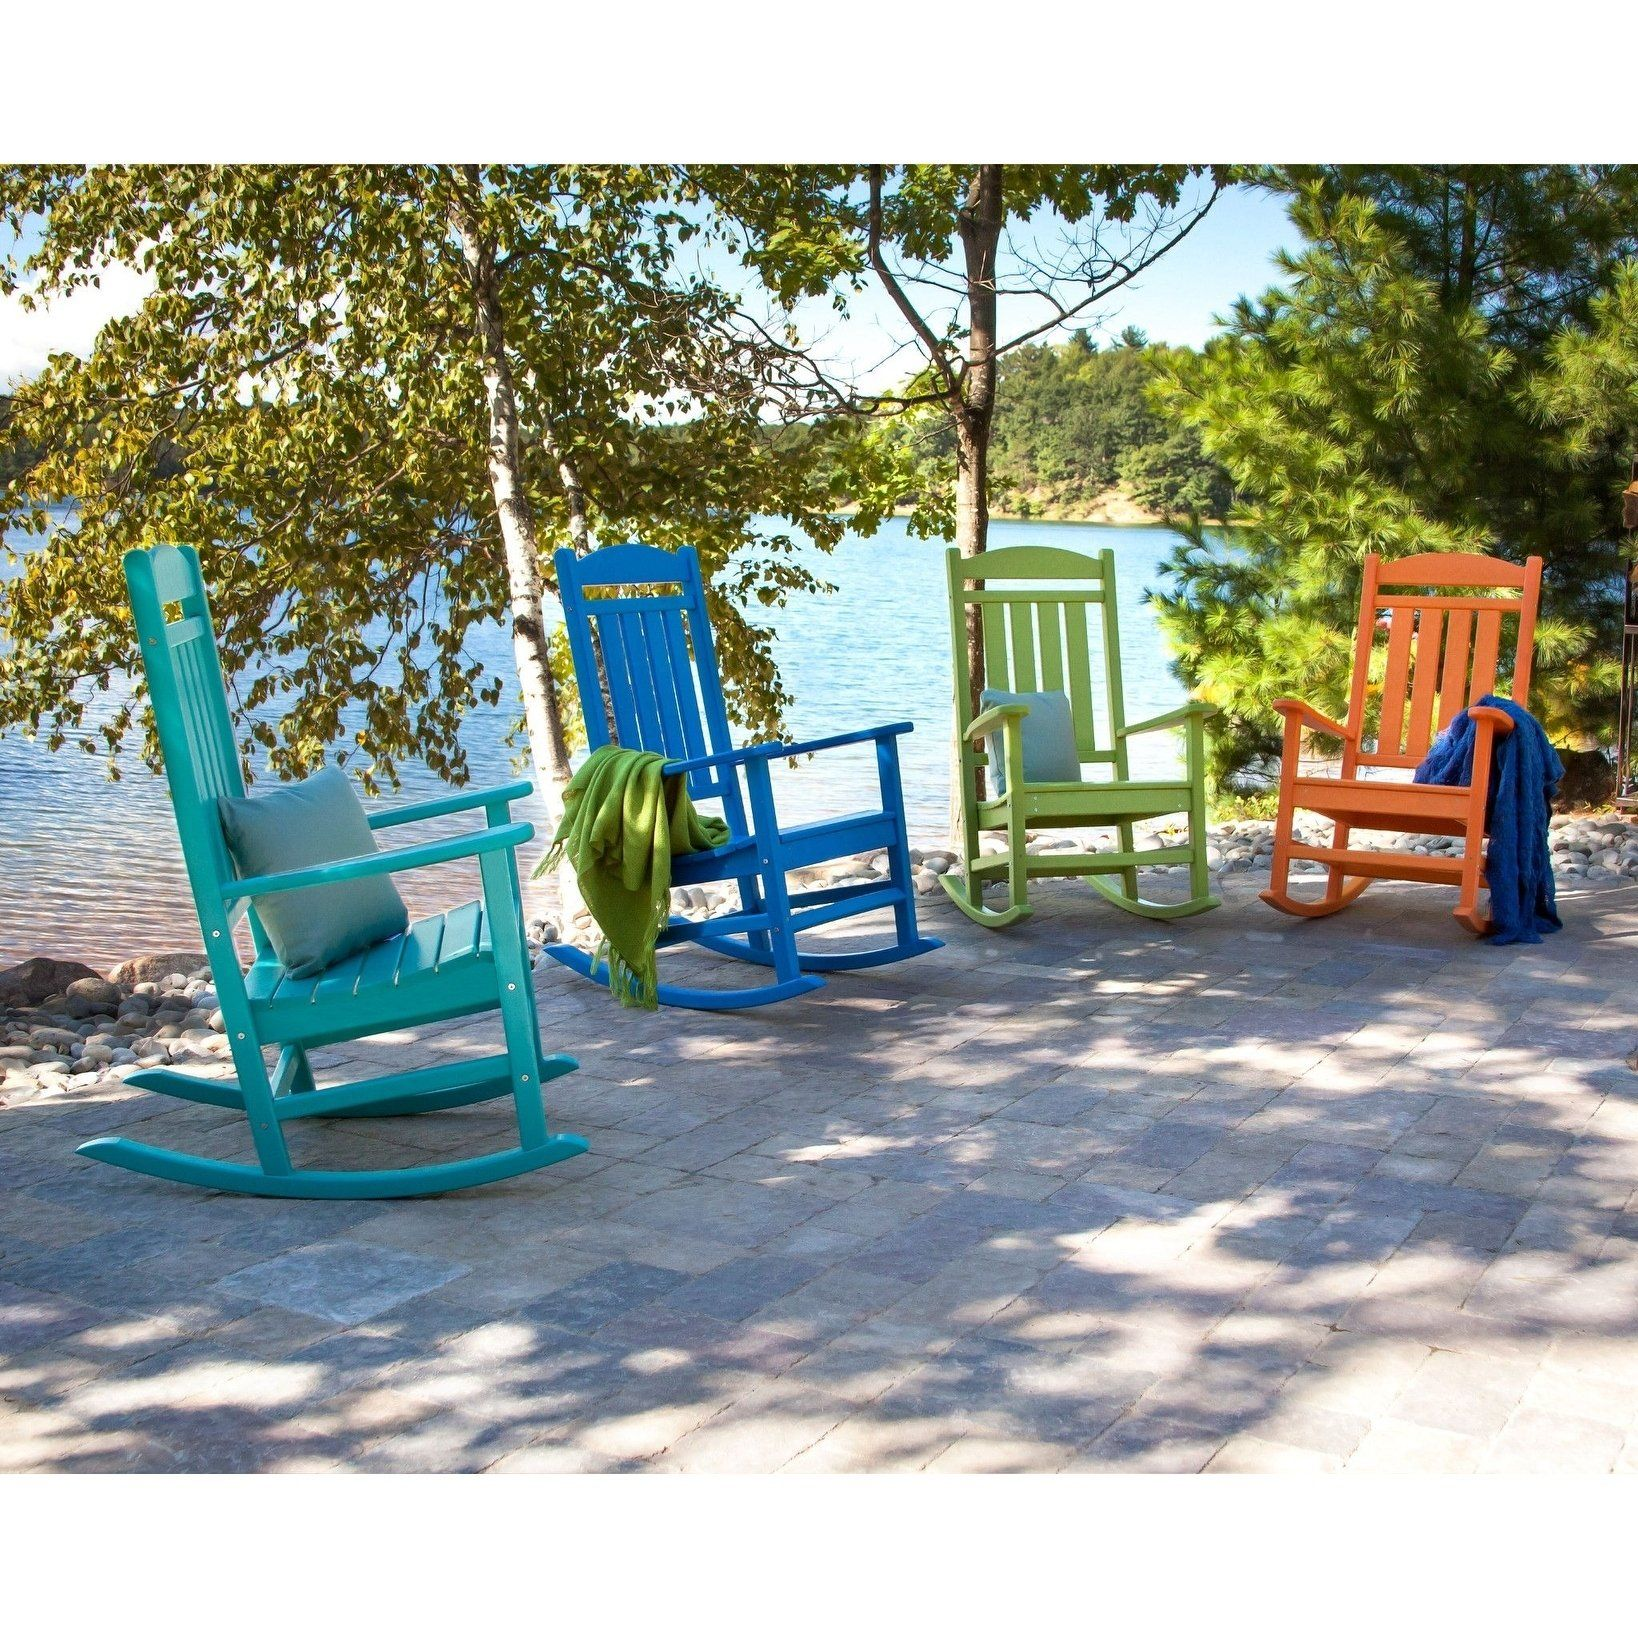 Swell Polywood Presidential Outdoor Rocking Chair Aruba Recycled Pdpeps Interior Chair Design Pdpepsorg